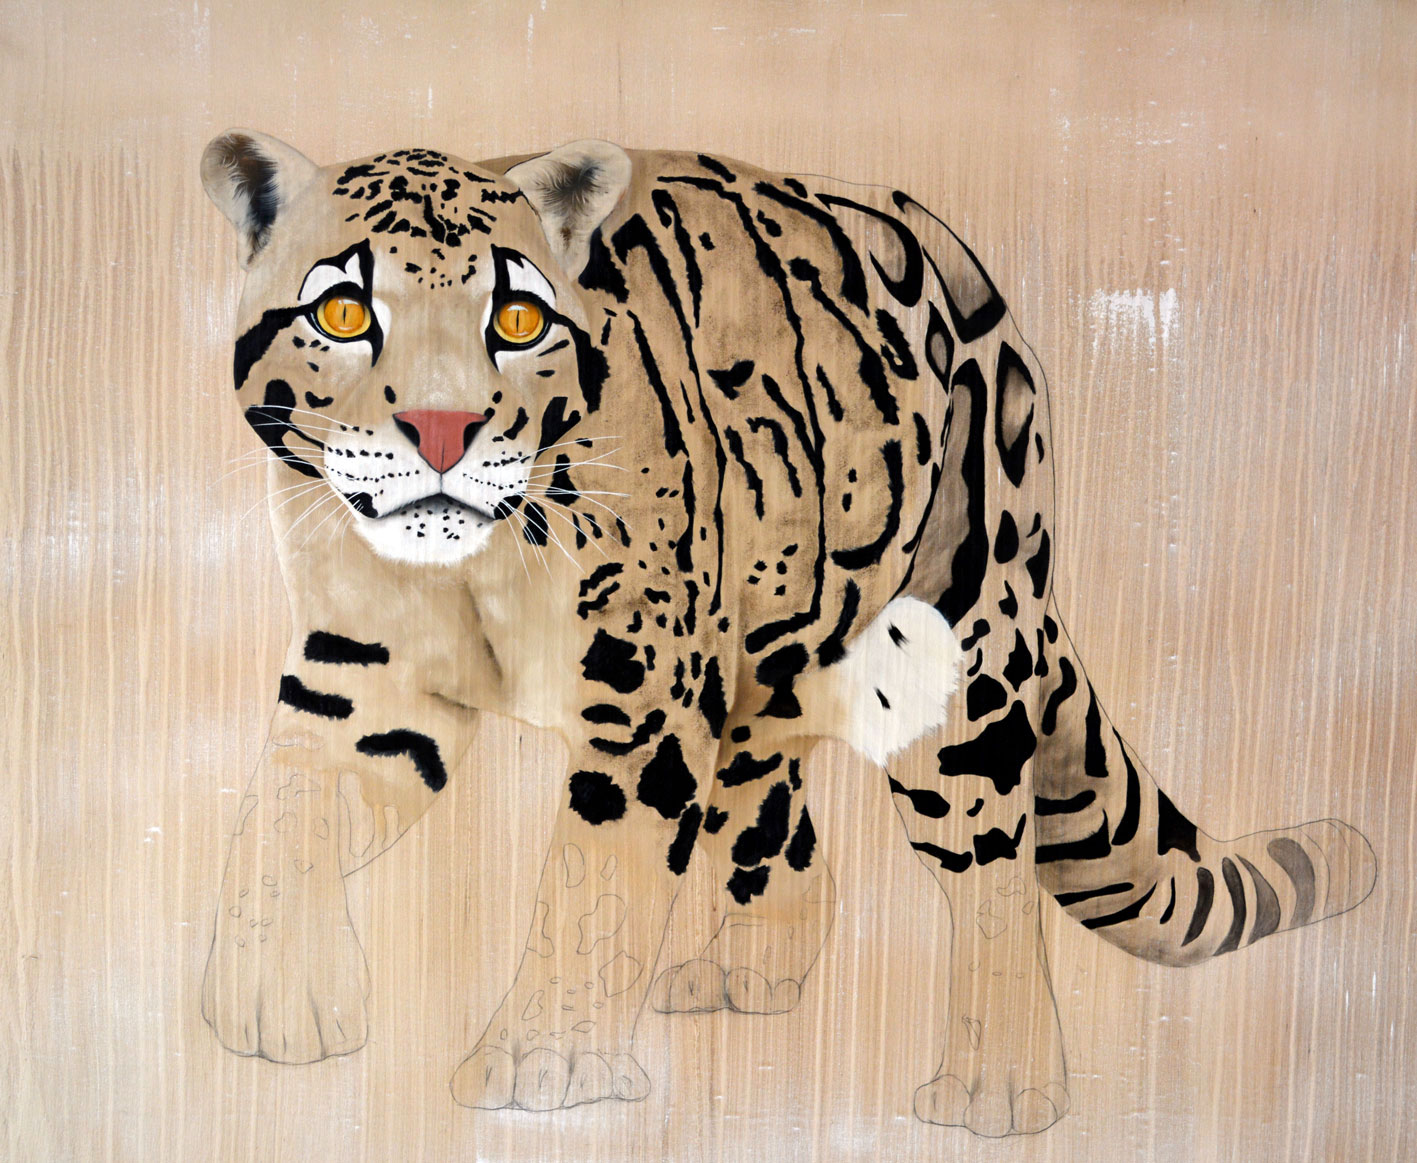 CLOUDED LEOPARD divers Thierry Bisch Contemporary painter animals painting art decoration nature biodiversity conservation